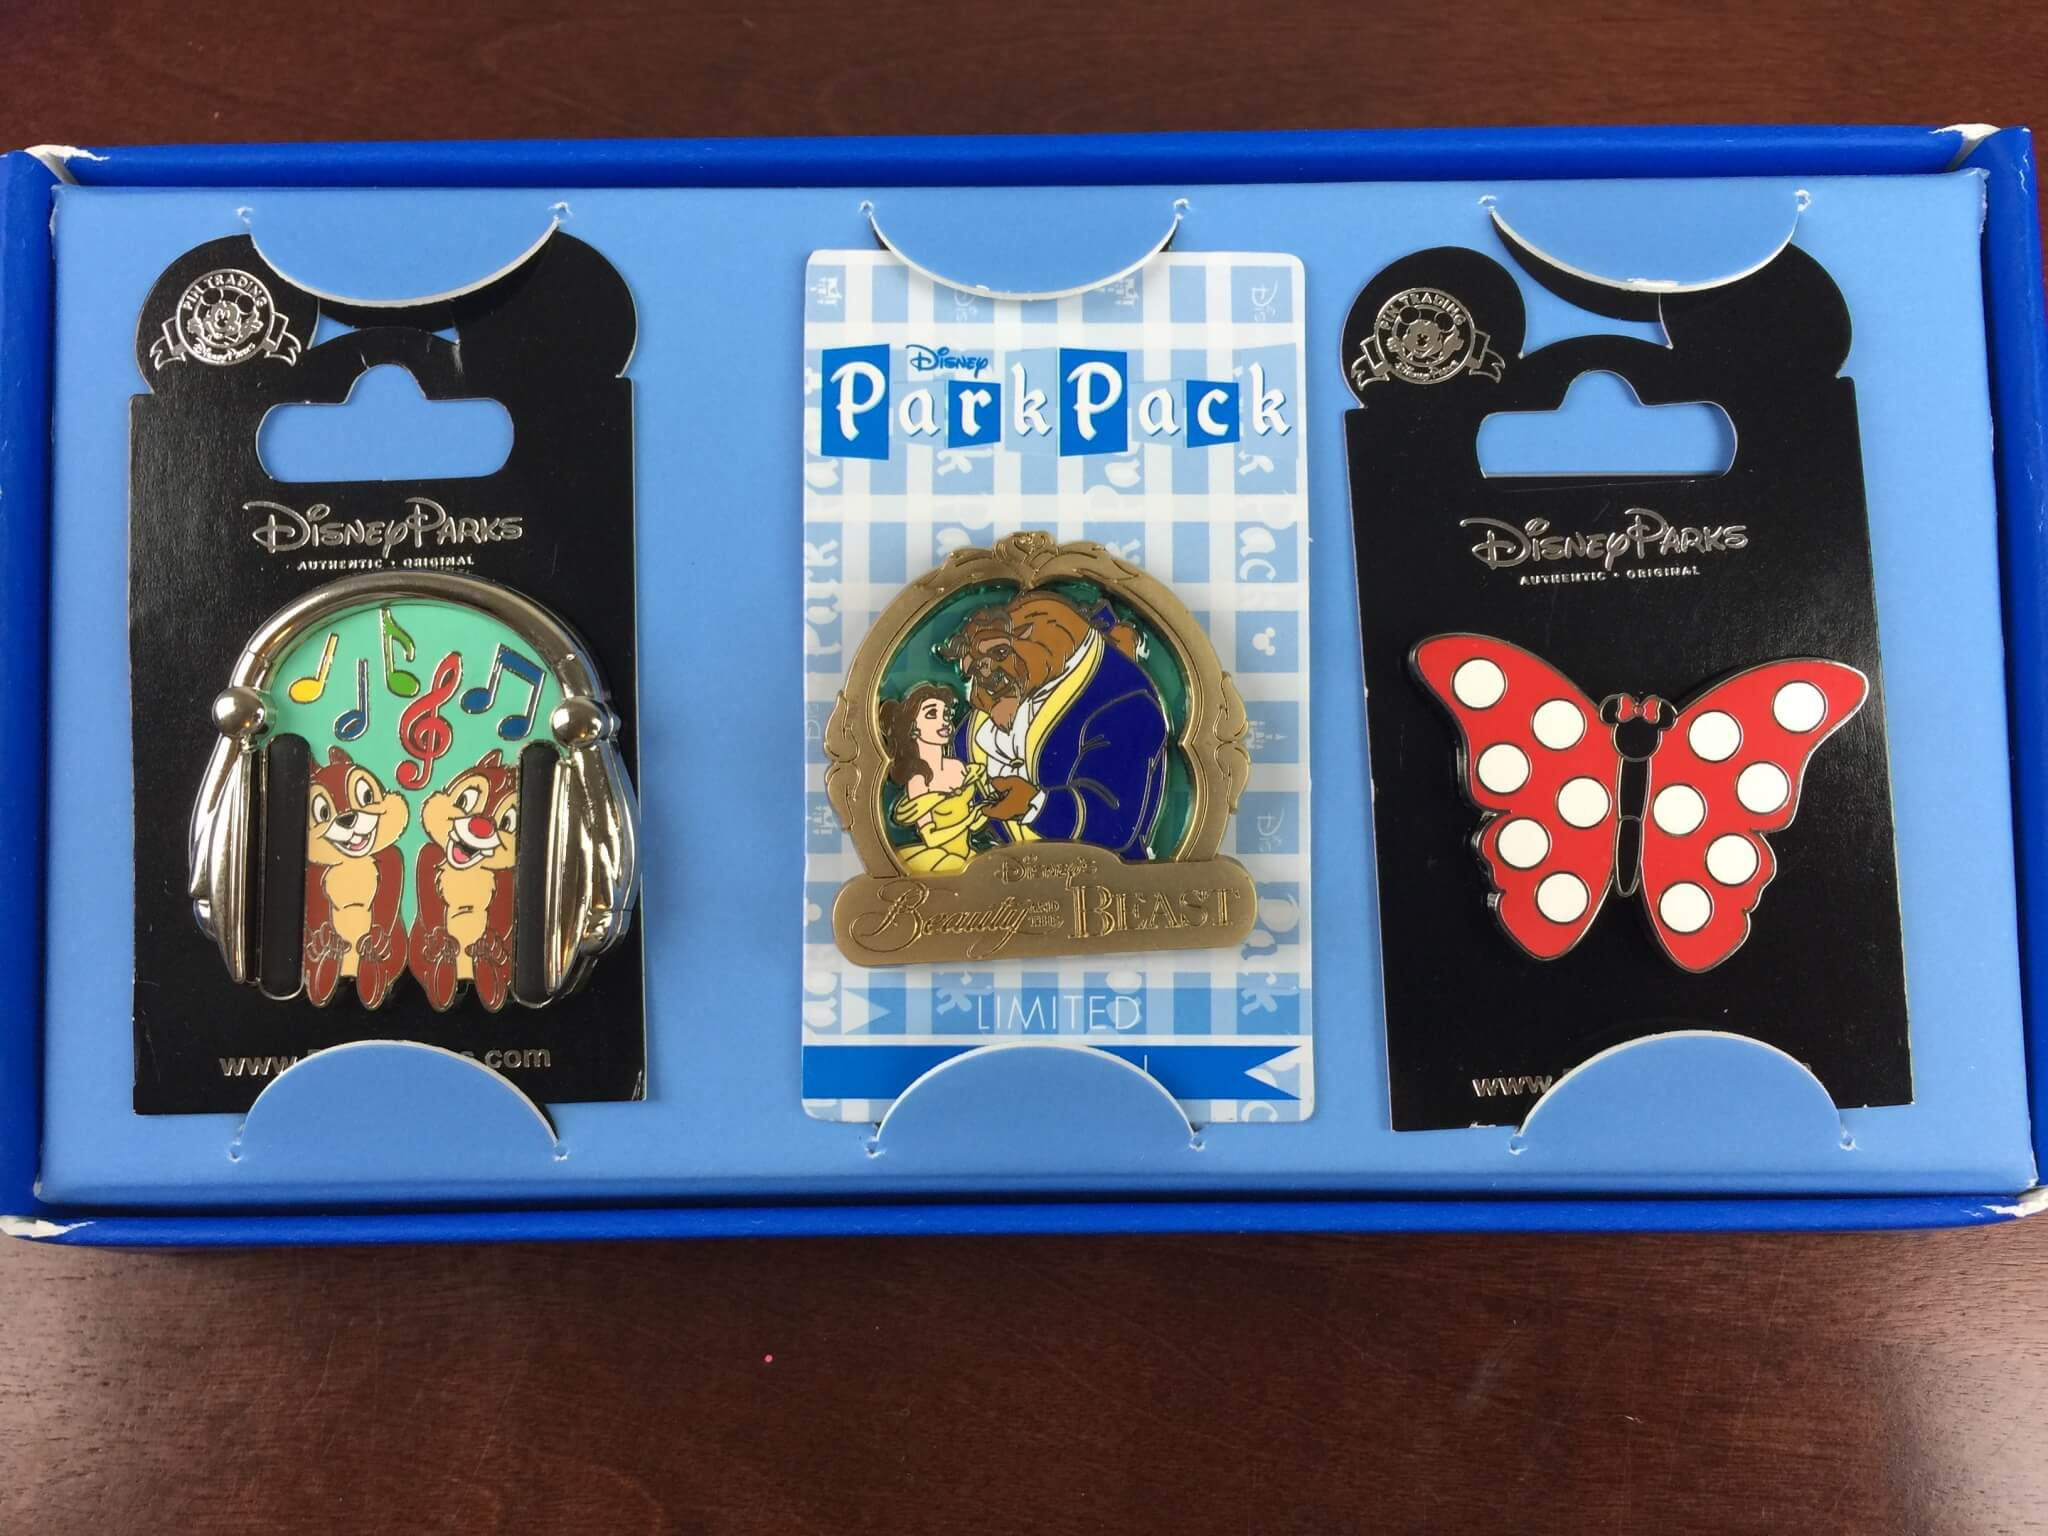 September 2015 Disney Park Pack: Pin Trading Edition Subscription Box Review + Subscription Available NOW!